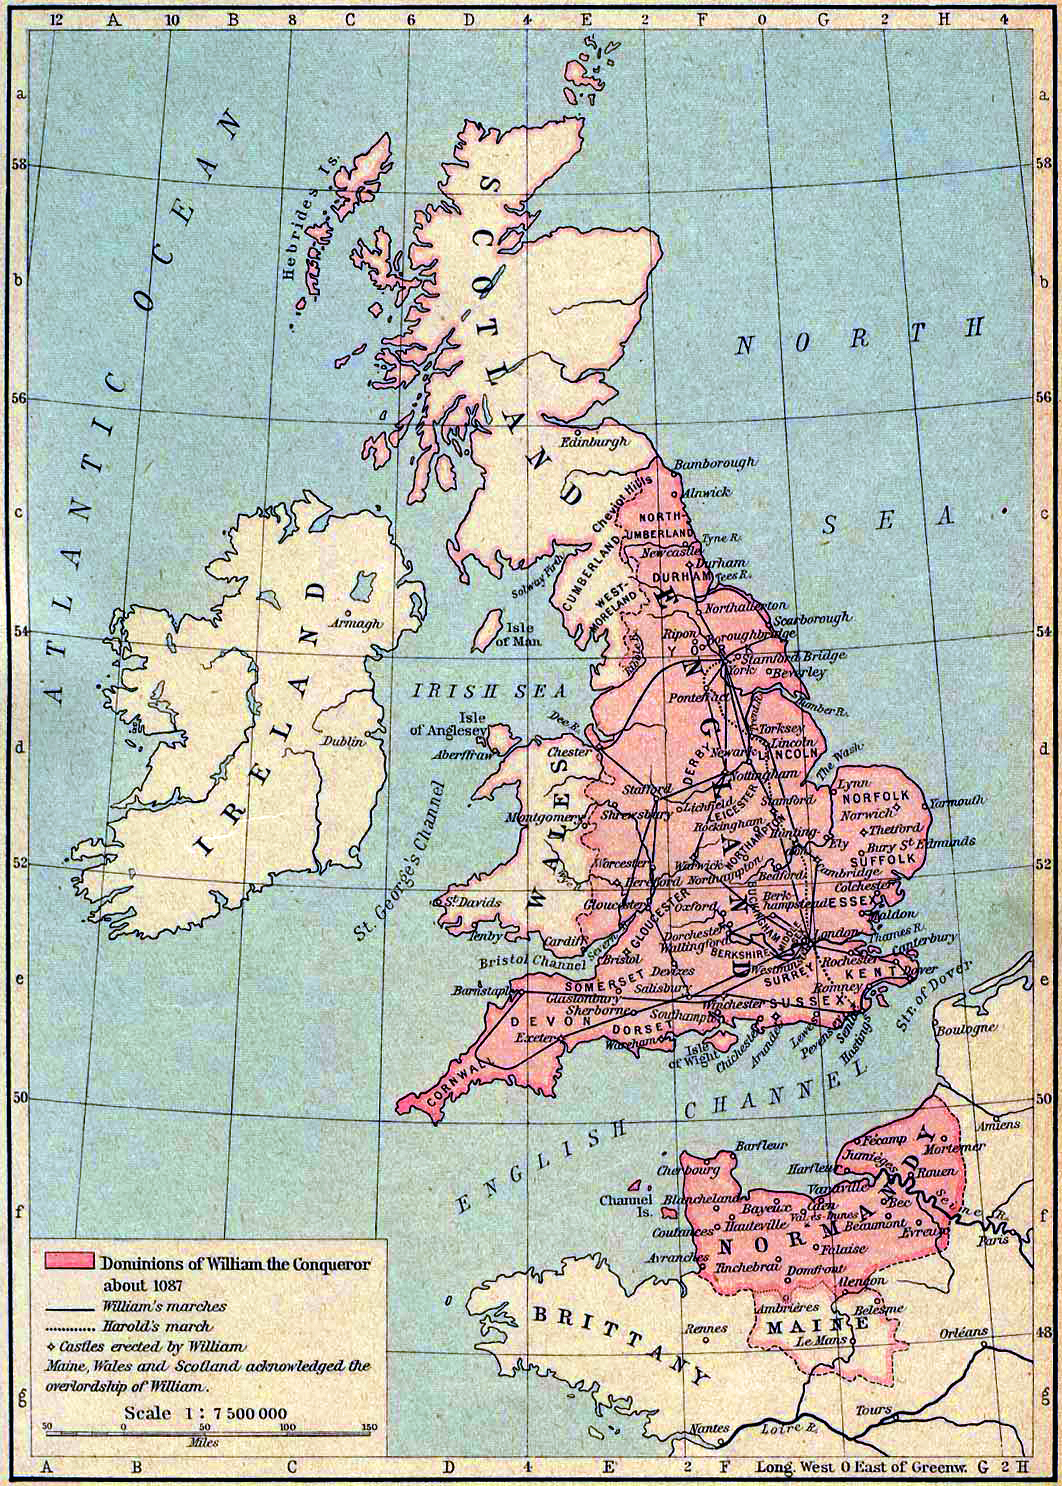 Map of the Dominions of William the Conqueror about 1087